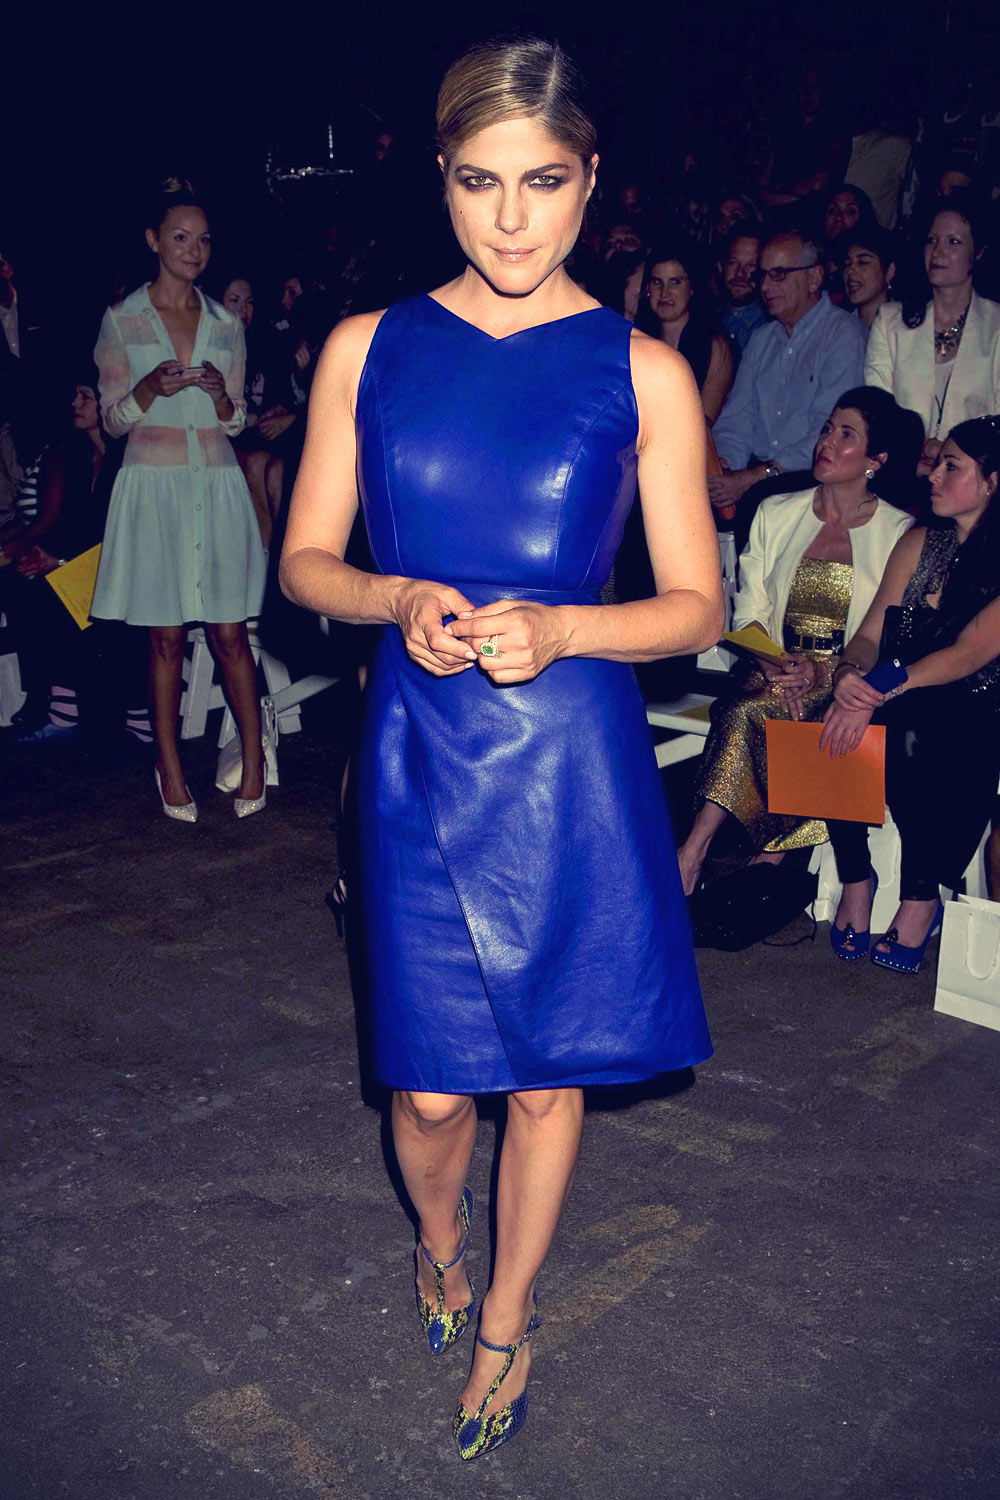 Mercedes Benz Midtown >> Selma Blair attends the Christian Siriano fashion show ...